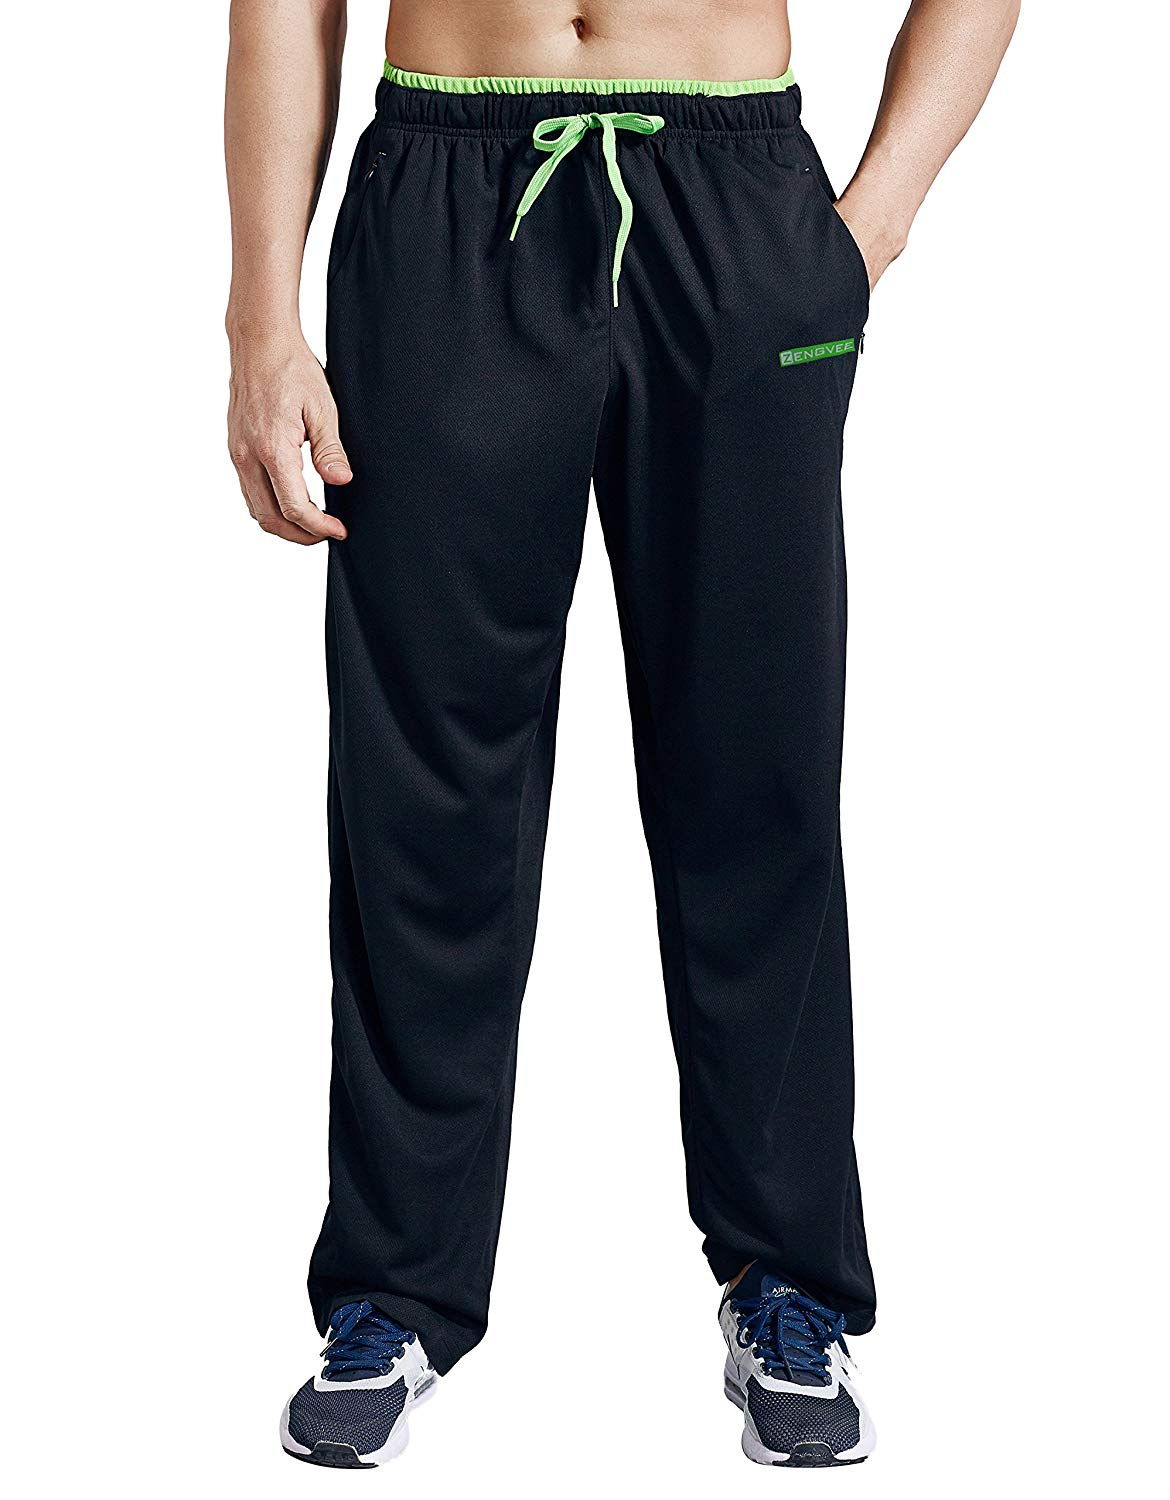 Zengvee Men's Sweatpant